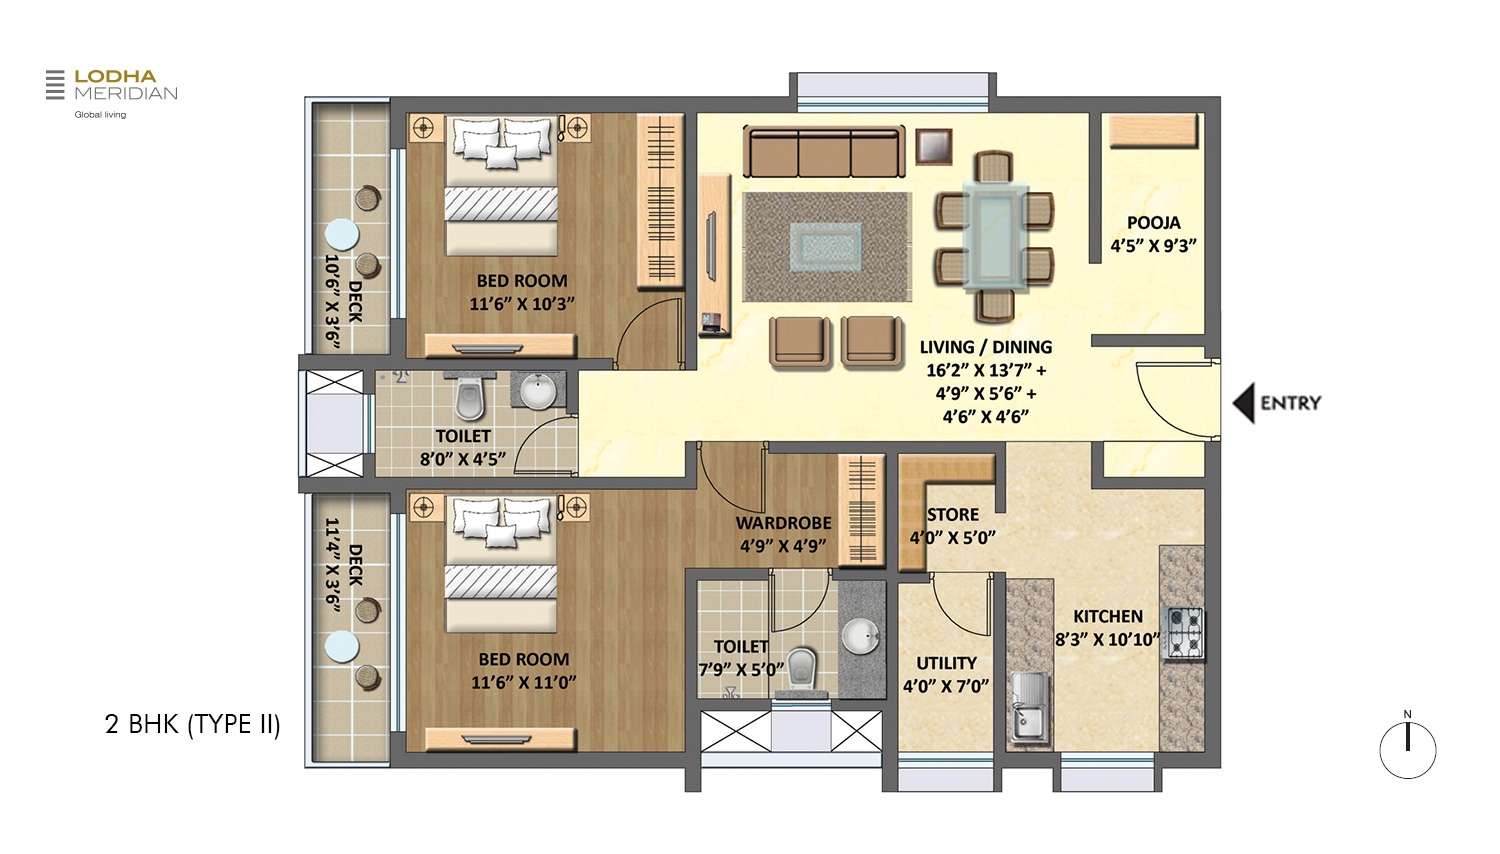 2-bhk-type2 Luxury House Plans Sq Ft on 12000 square foot house plans, new england saltbox house plans, small cabin floor plans, 650 square foot house plans, 15000 sq ft office, 15000 sq ft retail, 25000 sq ft home plans, french country house plans, minecraft mansion floor plans, over 5000 sq ft home plans, 400 square foot apartment plans, 1500 sq ft floor plans, 400 square foot cottage plans, 15000 sq ft building, 400 ft studio plans, 300 square foot apartment plans, 18000 square foot house plans, 15000 sq ft commercial, apartment floor plans,